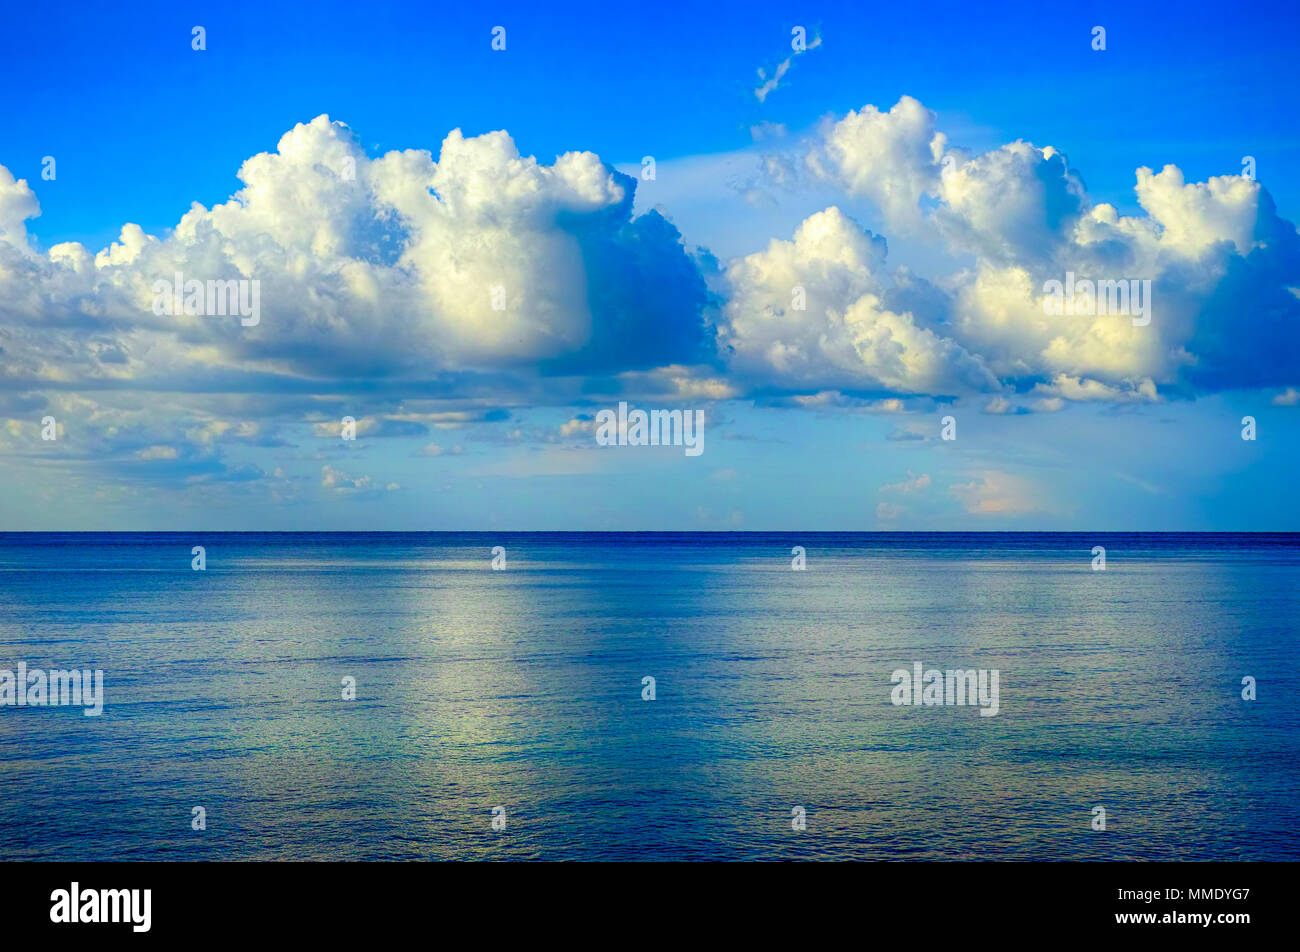 Blue sky with beautiful clouds over the sea. Non-urban scene. - Stock Image